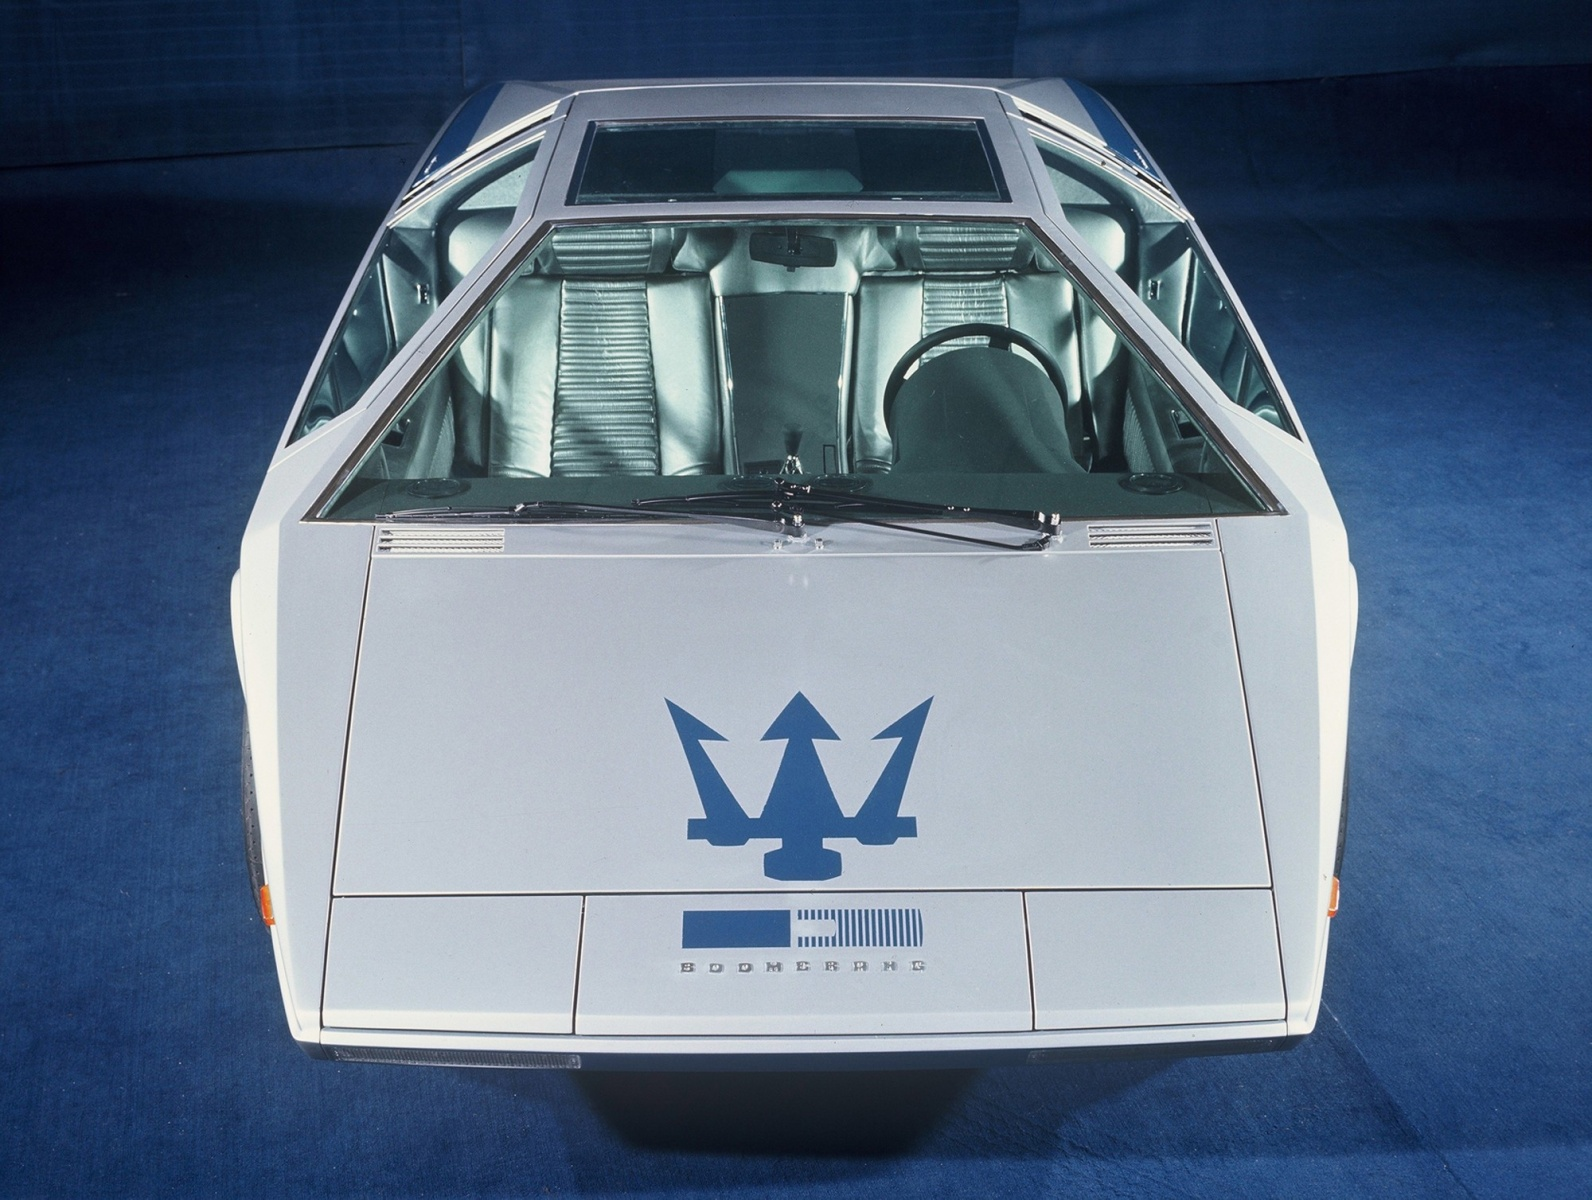 one-of-a-kind-maserati-boomerang-sold-for-376-million-less-than-initially-estimated_4